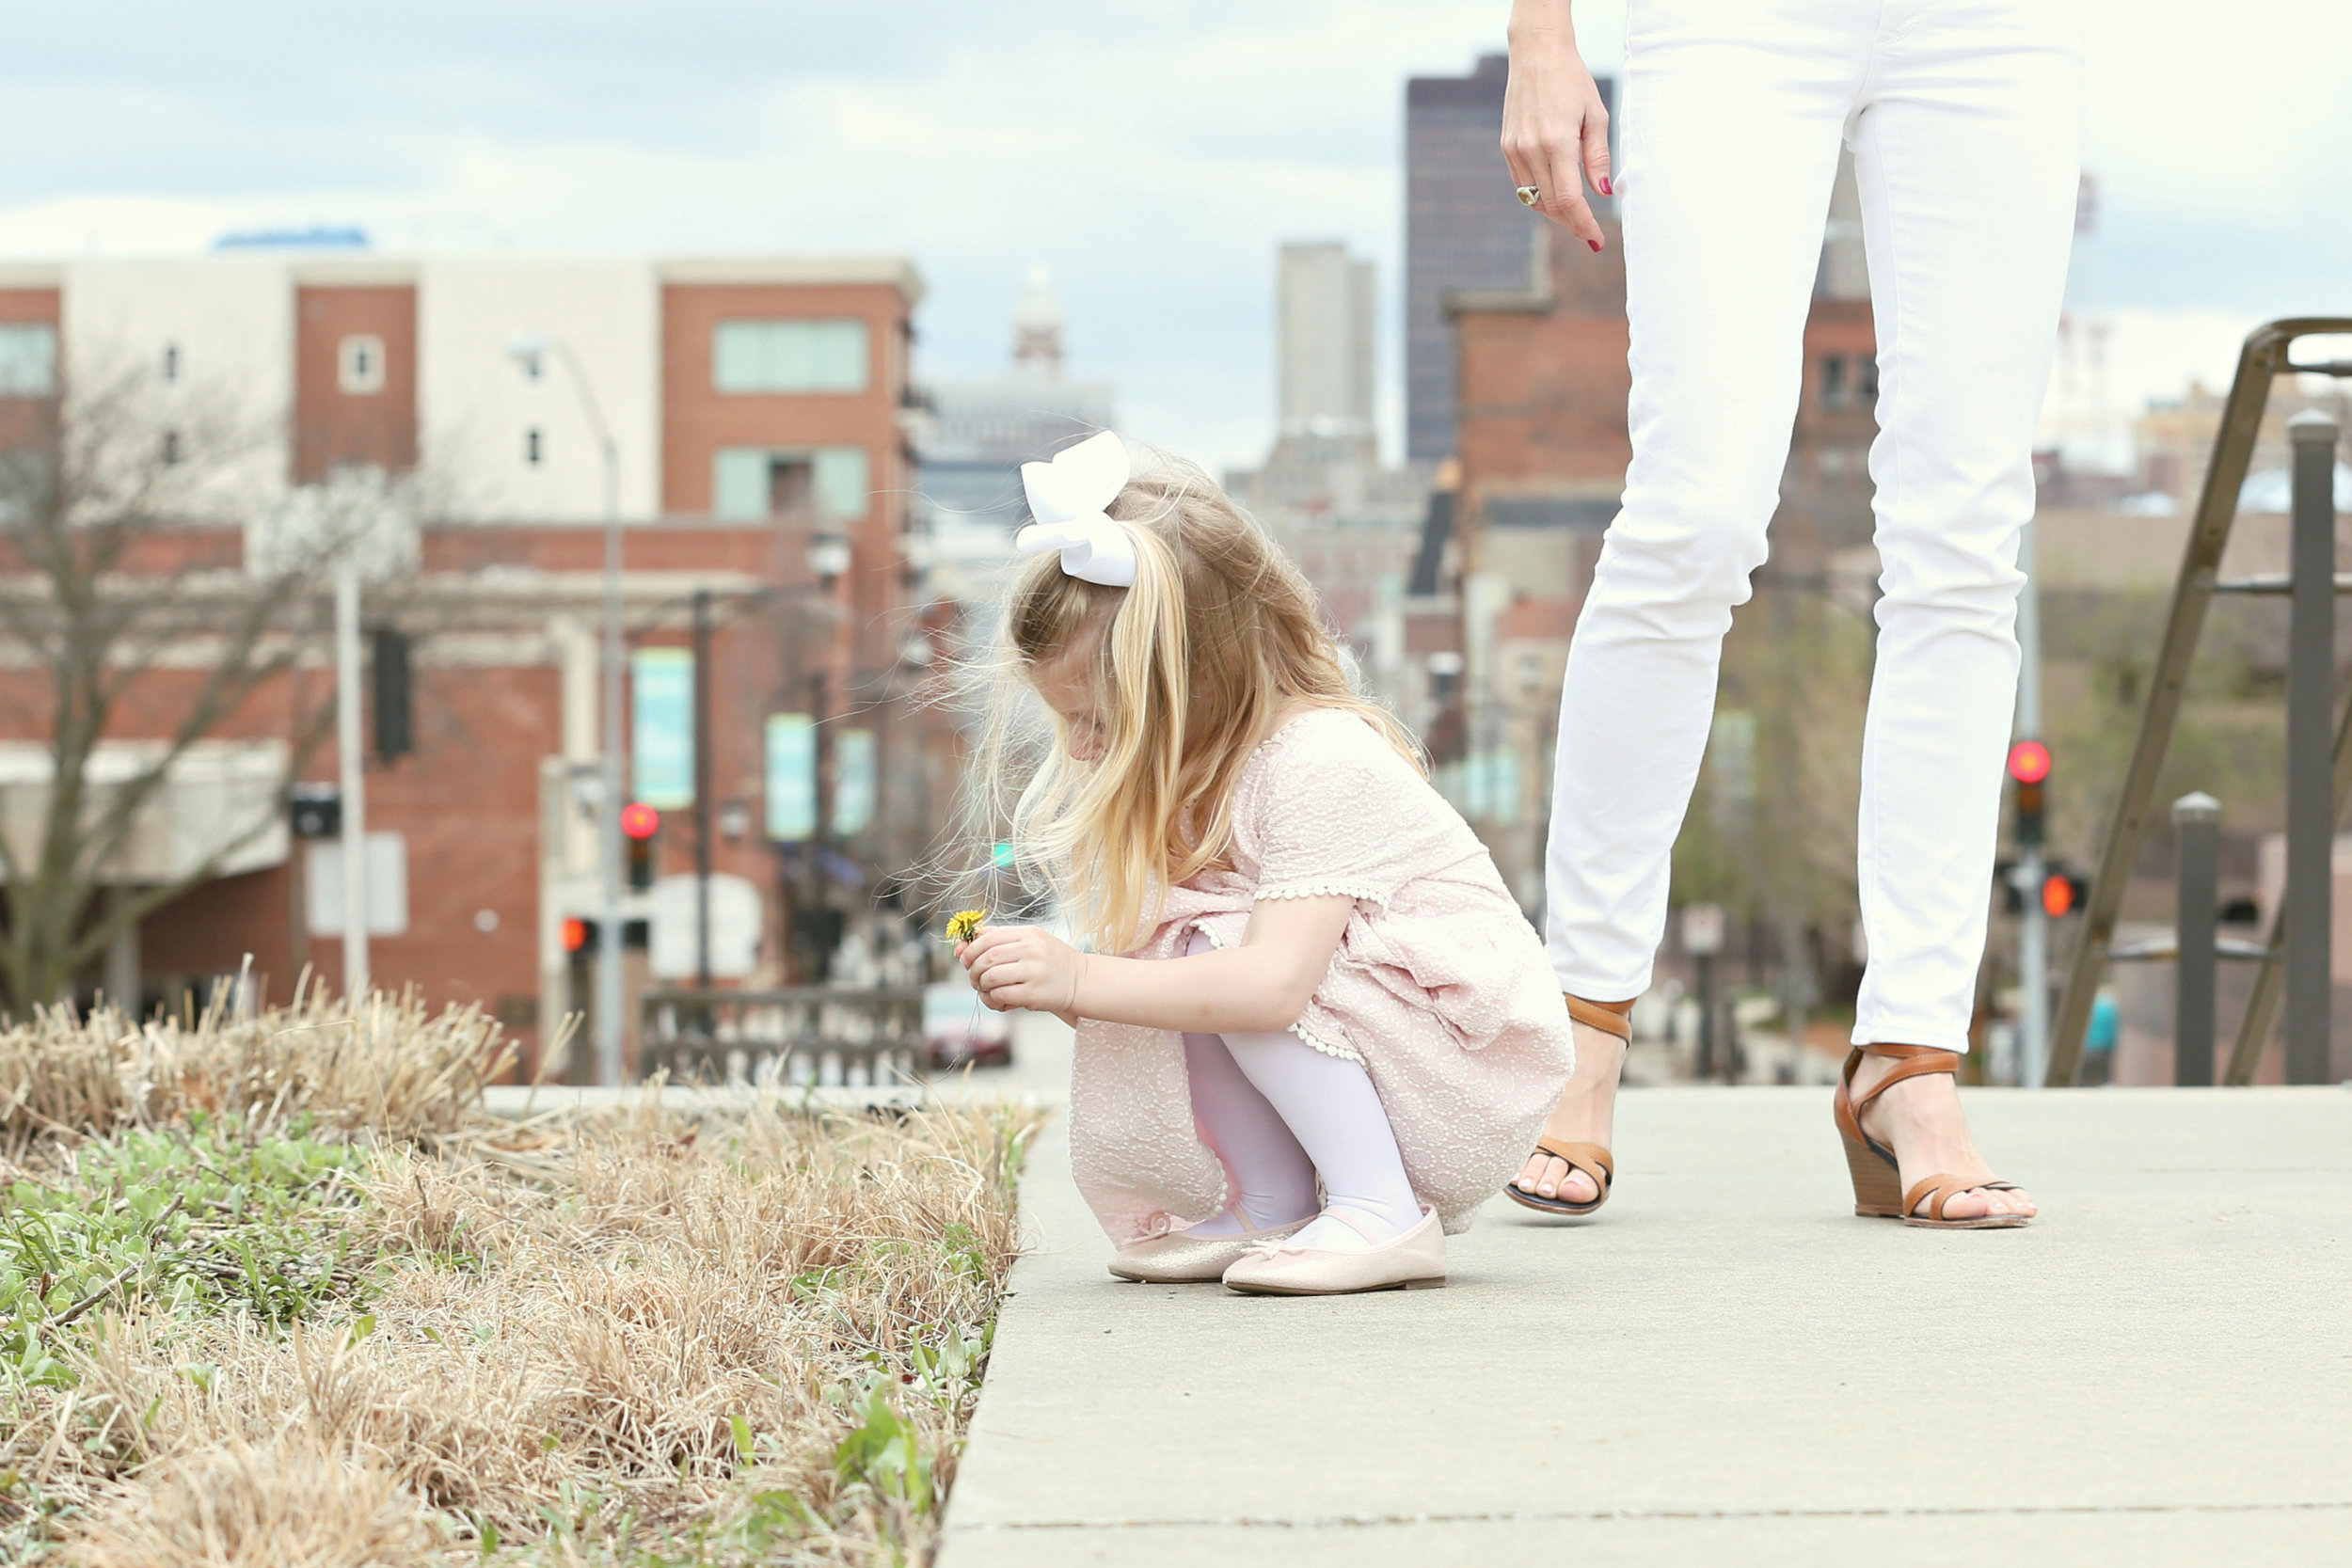 Fashion blogger, Lady and Red's daughter R picking dandelions during a photoshoot | LadyandRed.com